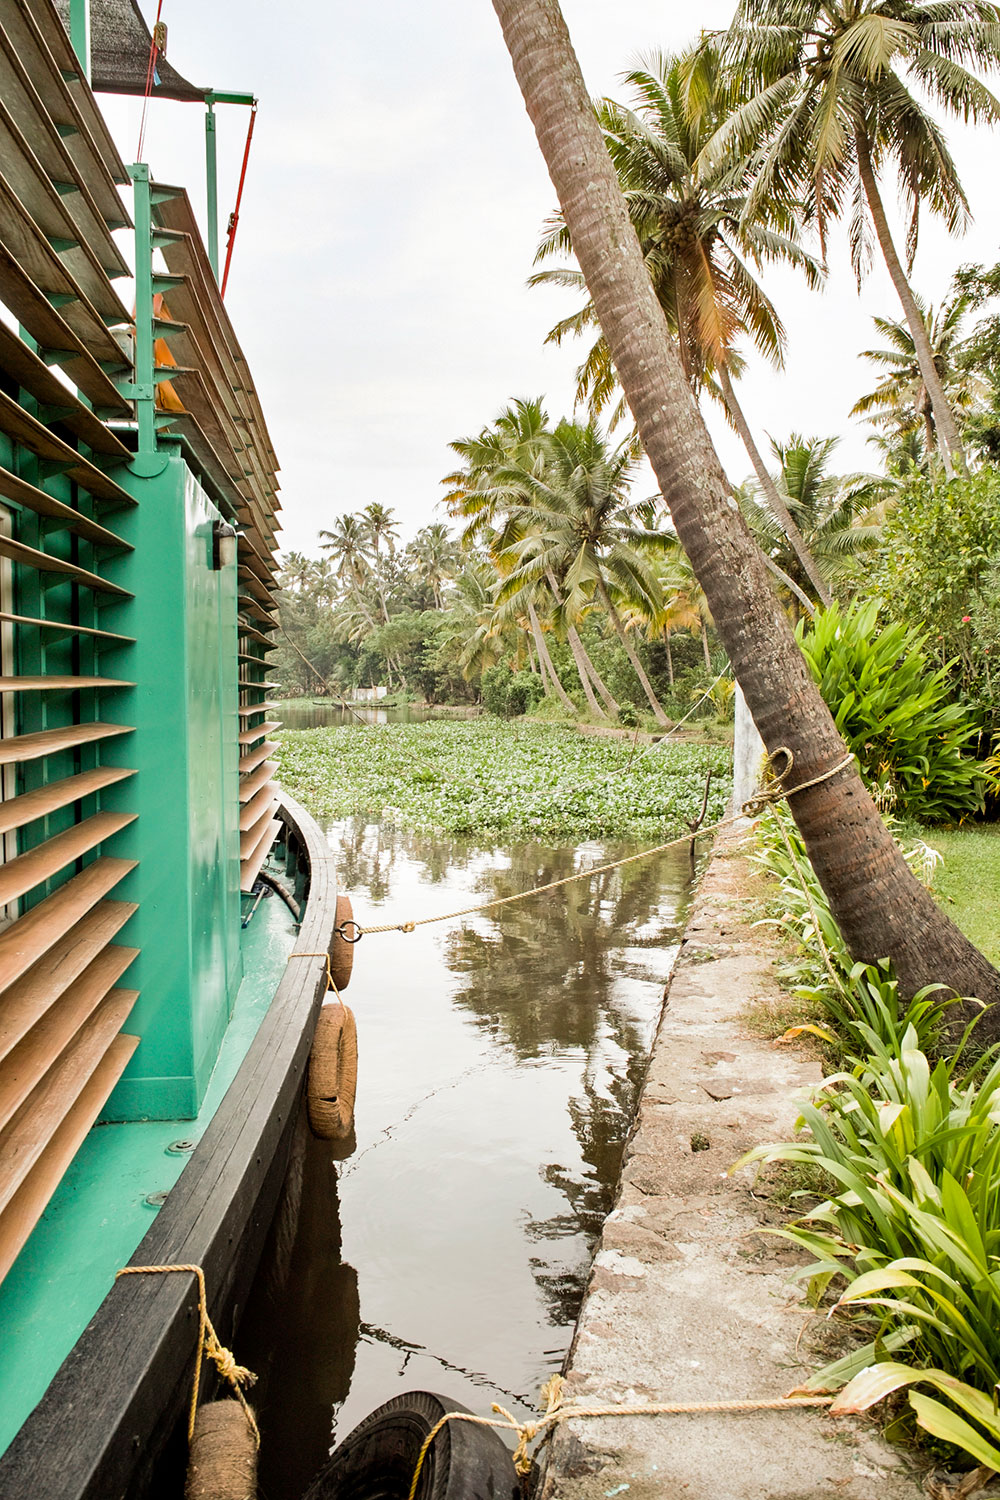 kerala_discovery_thevoyageur09